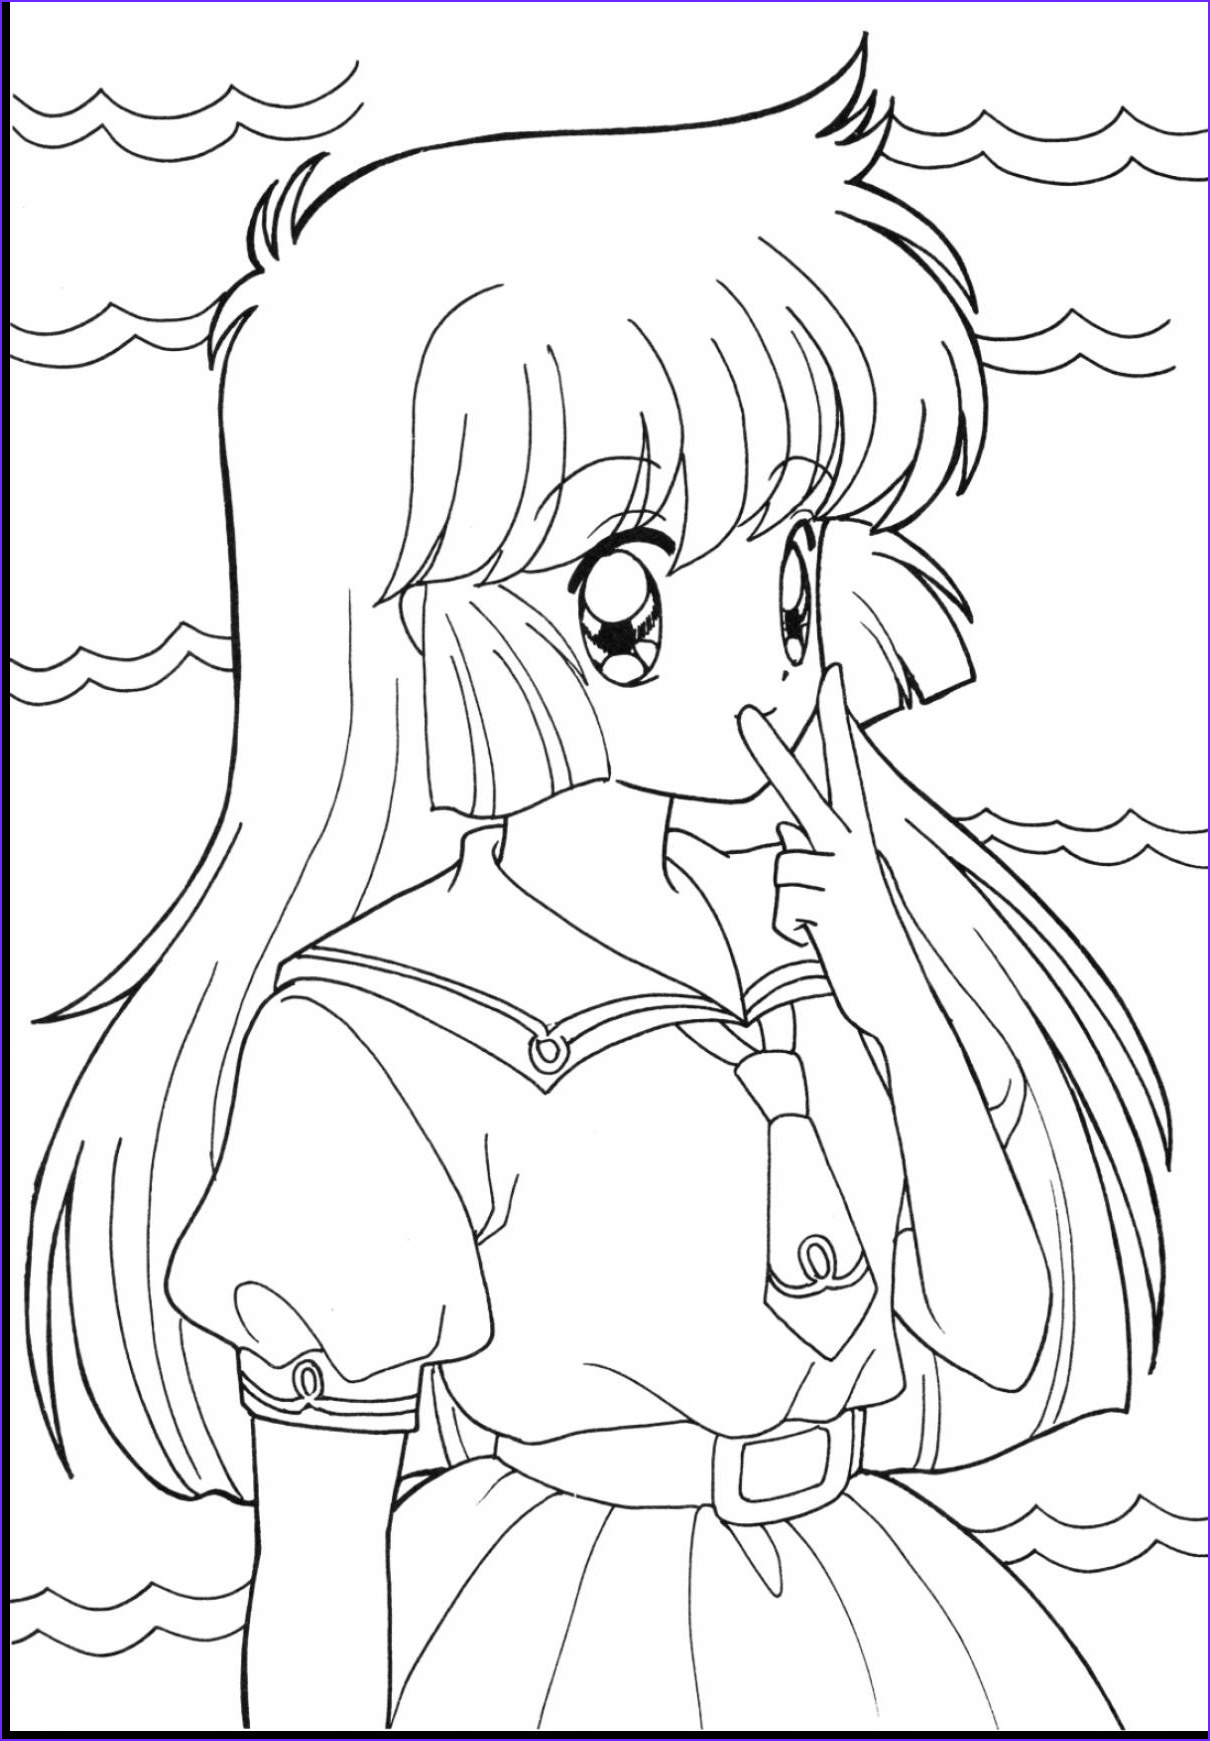 Anime Wolf Girl Coloring Page Cool Photography Anime Wolf Girl Coloring Pages Coloring Pages for Children